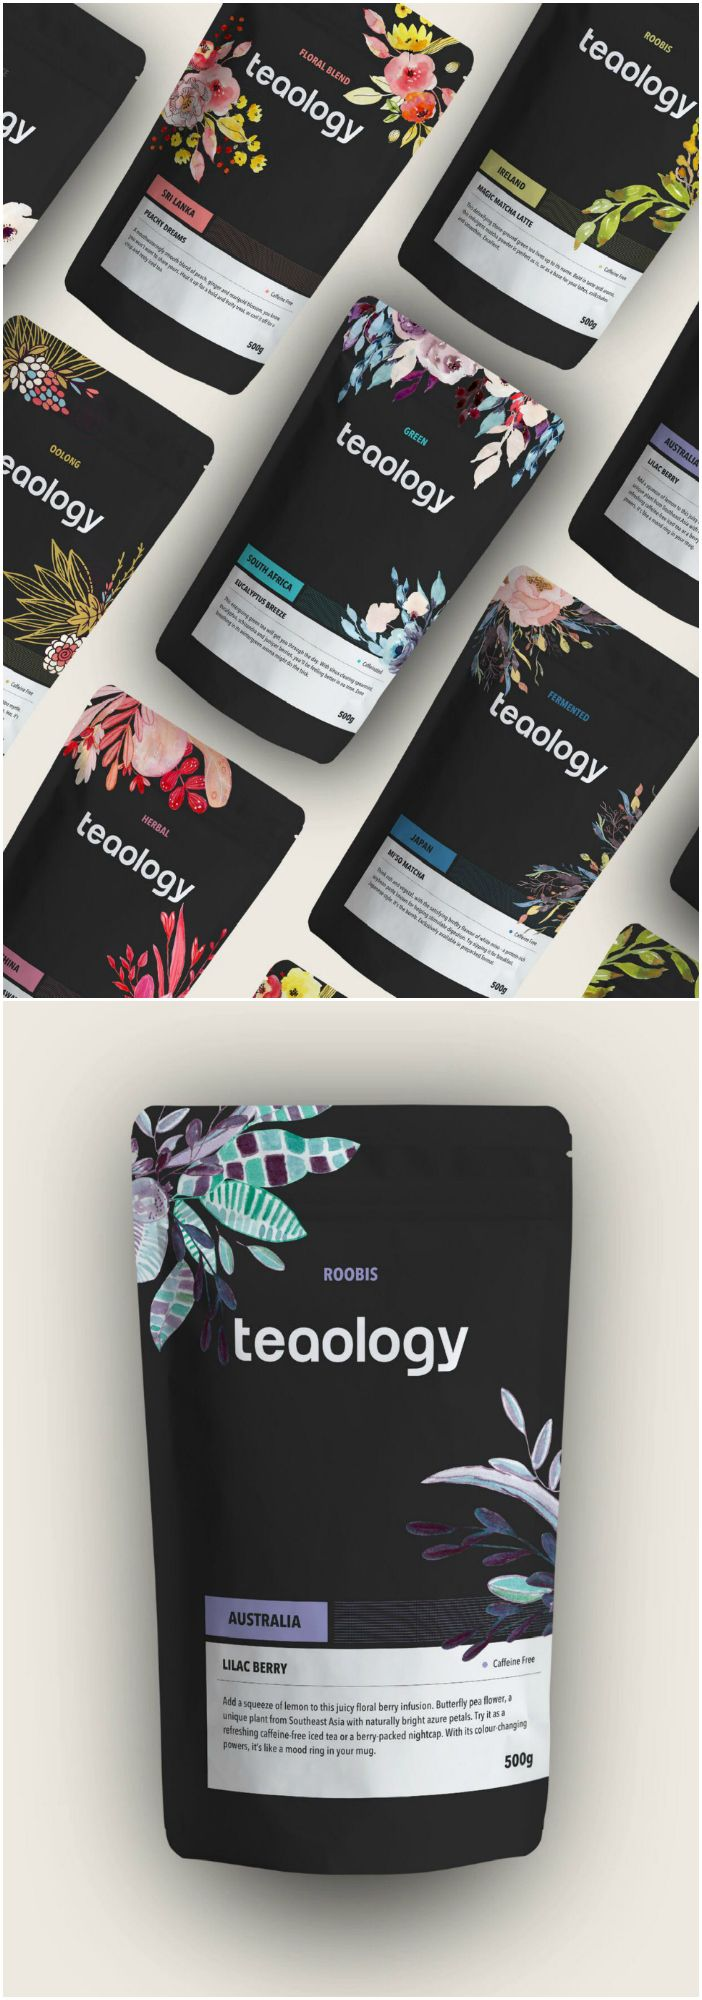 Modern Branding and Design for Teaology